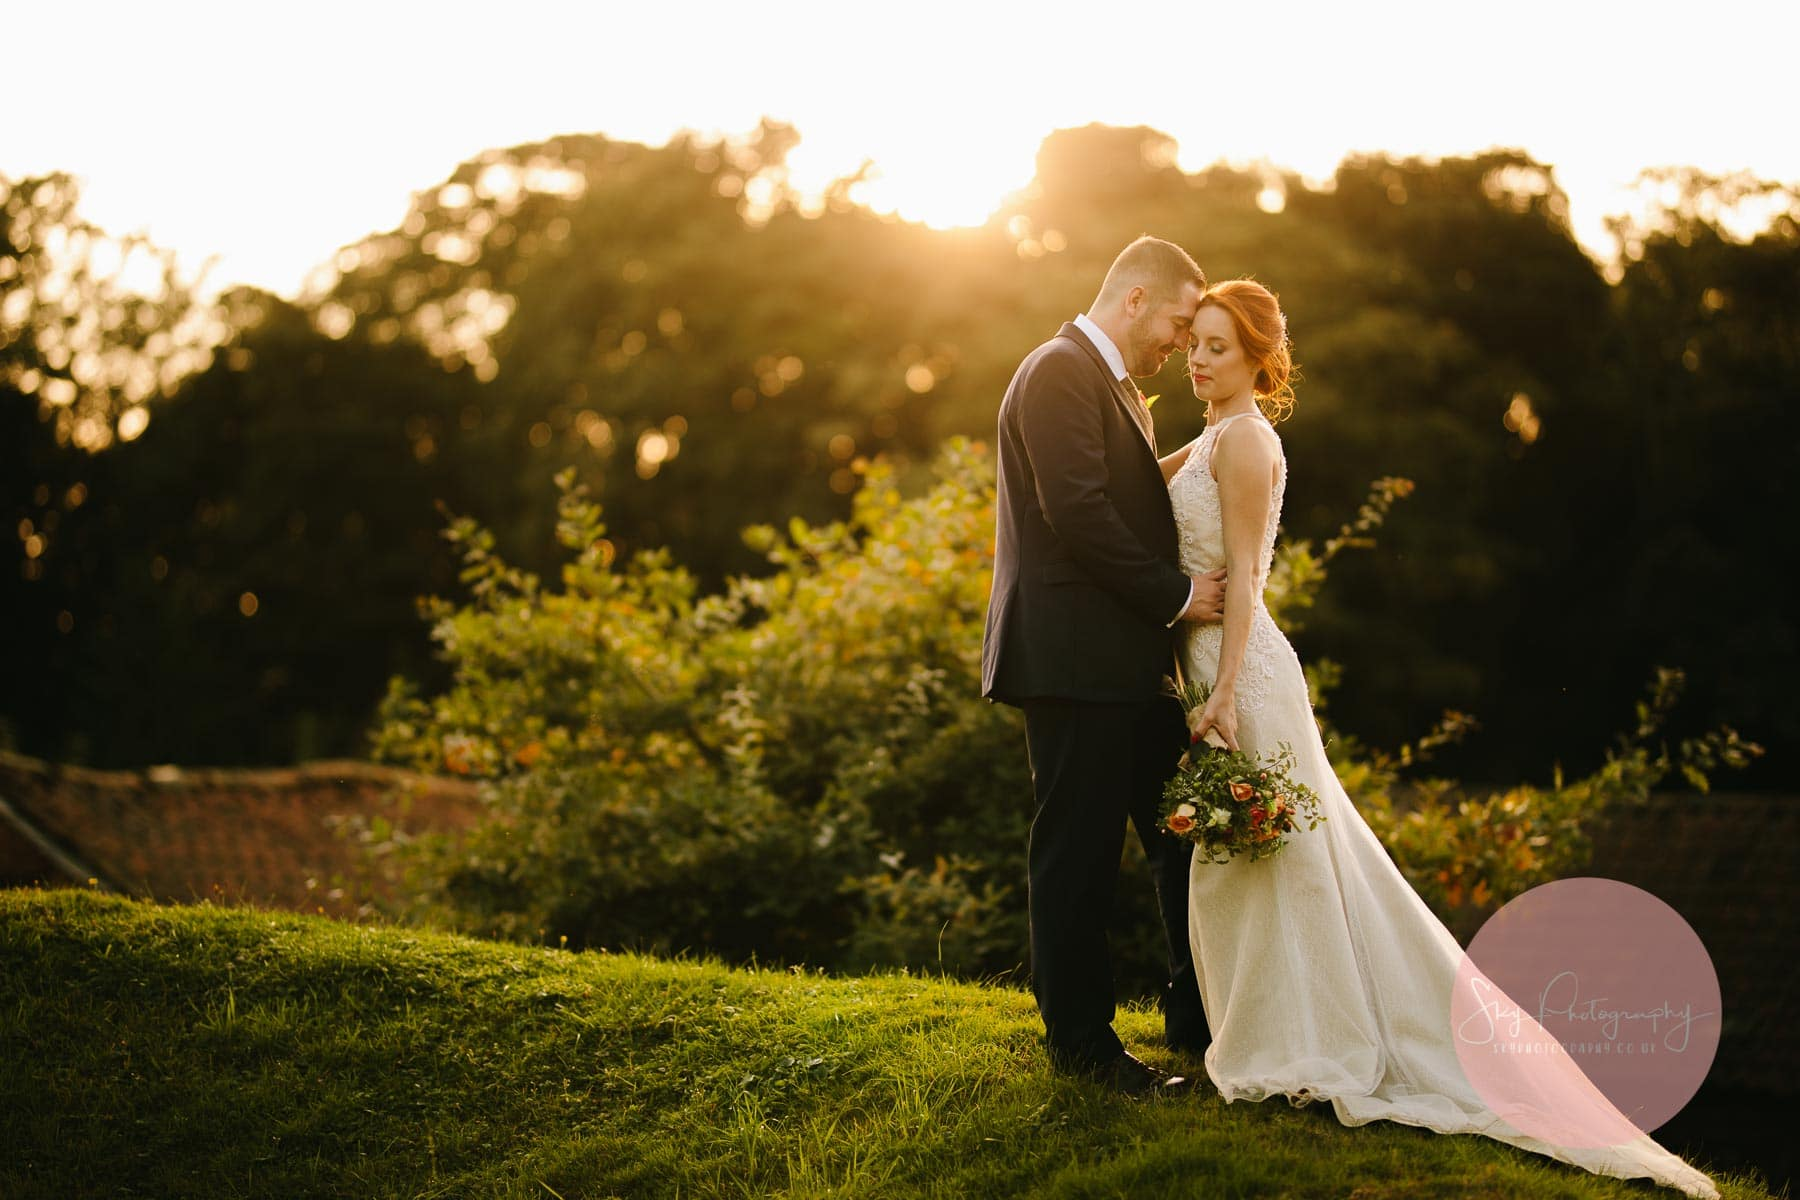 The Barns At Hunsbury Hill Wedding Photographer taking photos of a couple at sunset